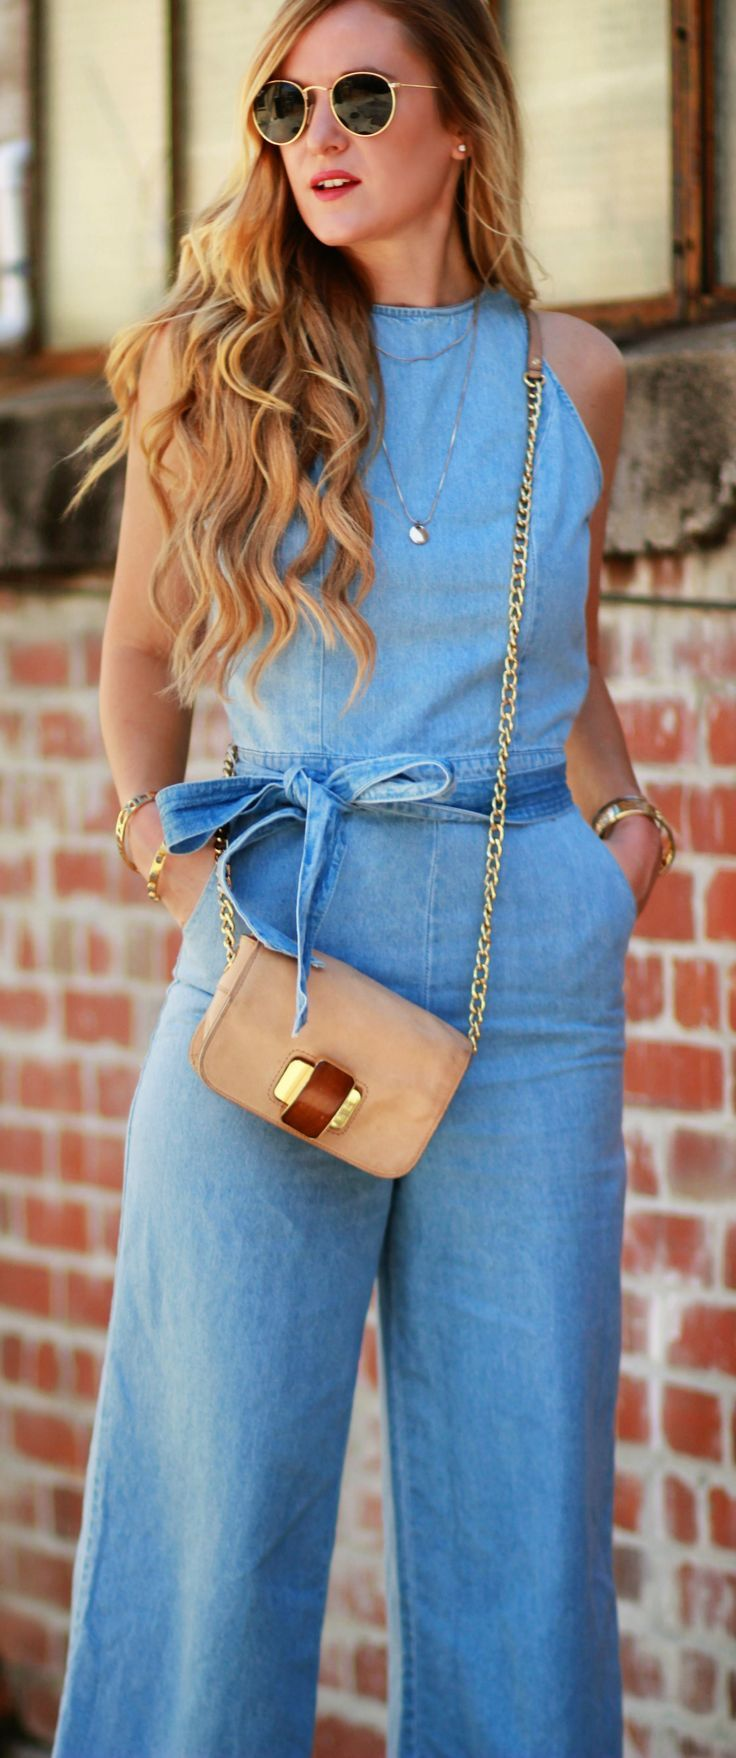 Florida fashion blogger styles a 70s inspired outfit with a denim ...